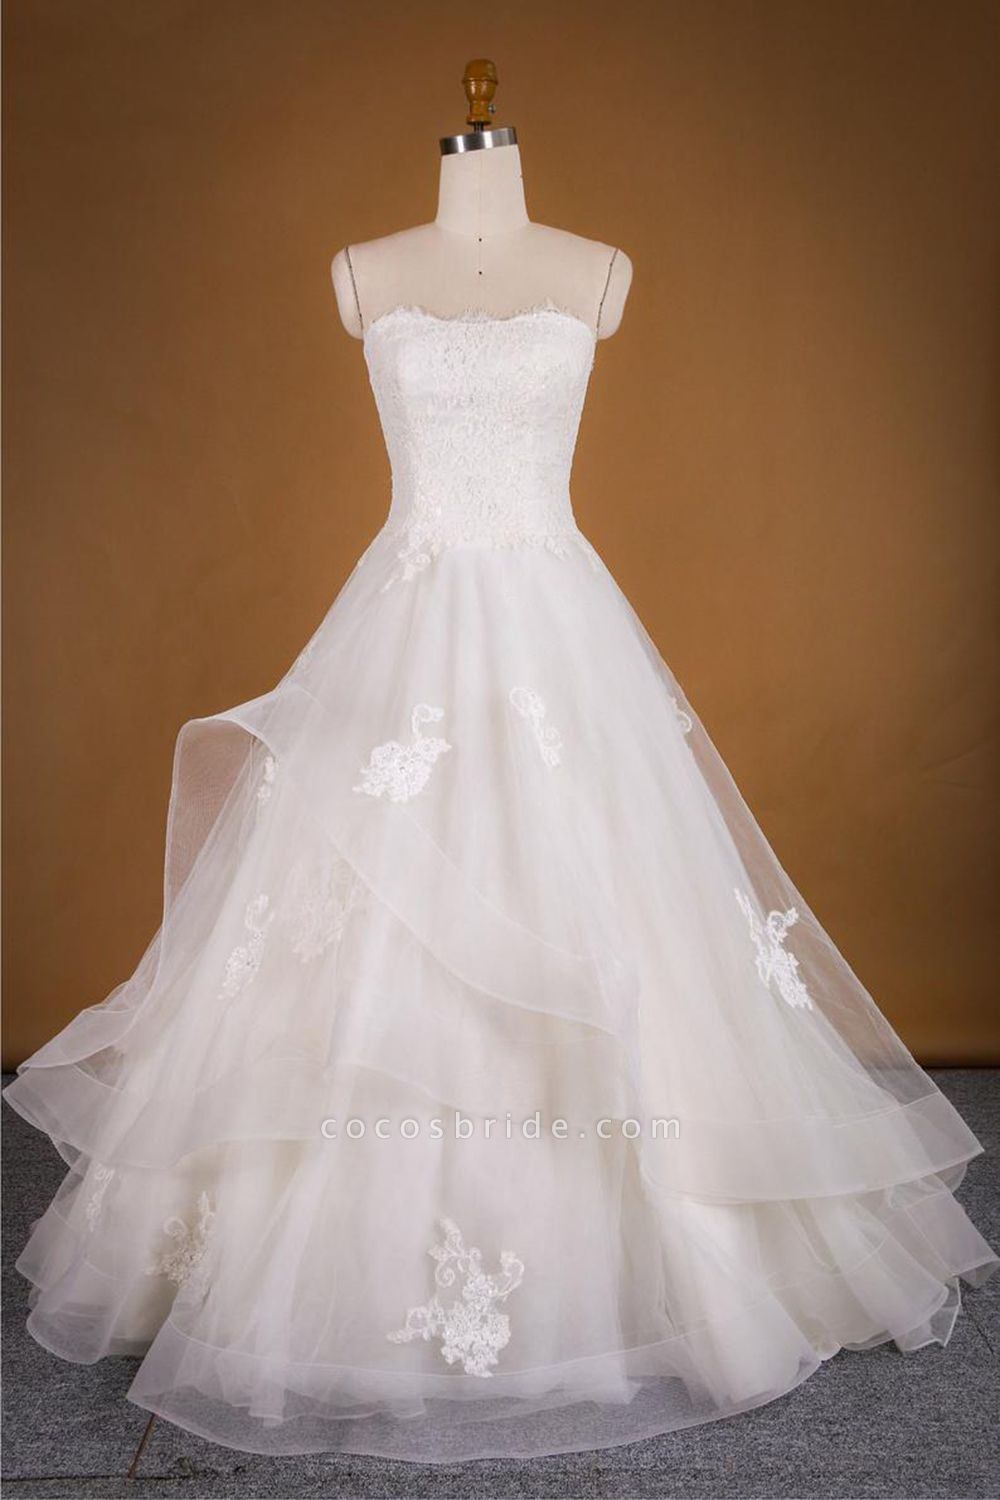 Strapless Lace-up Tulle A-line Wedding Dress